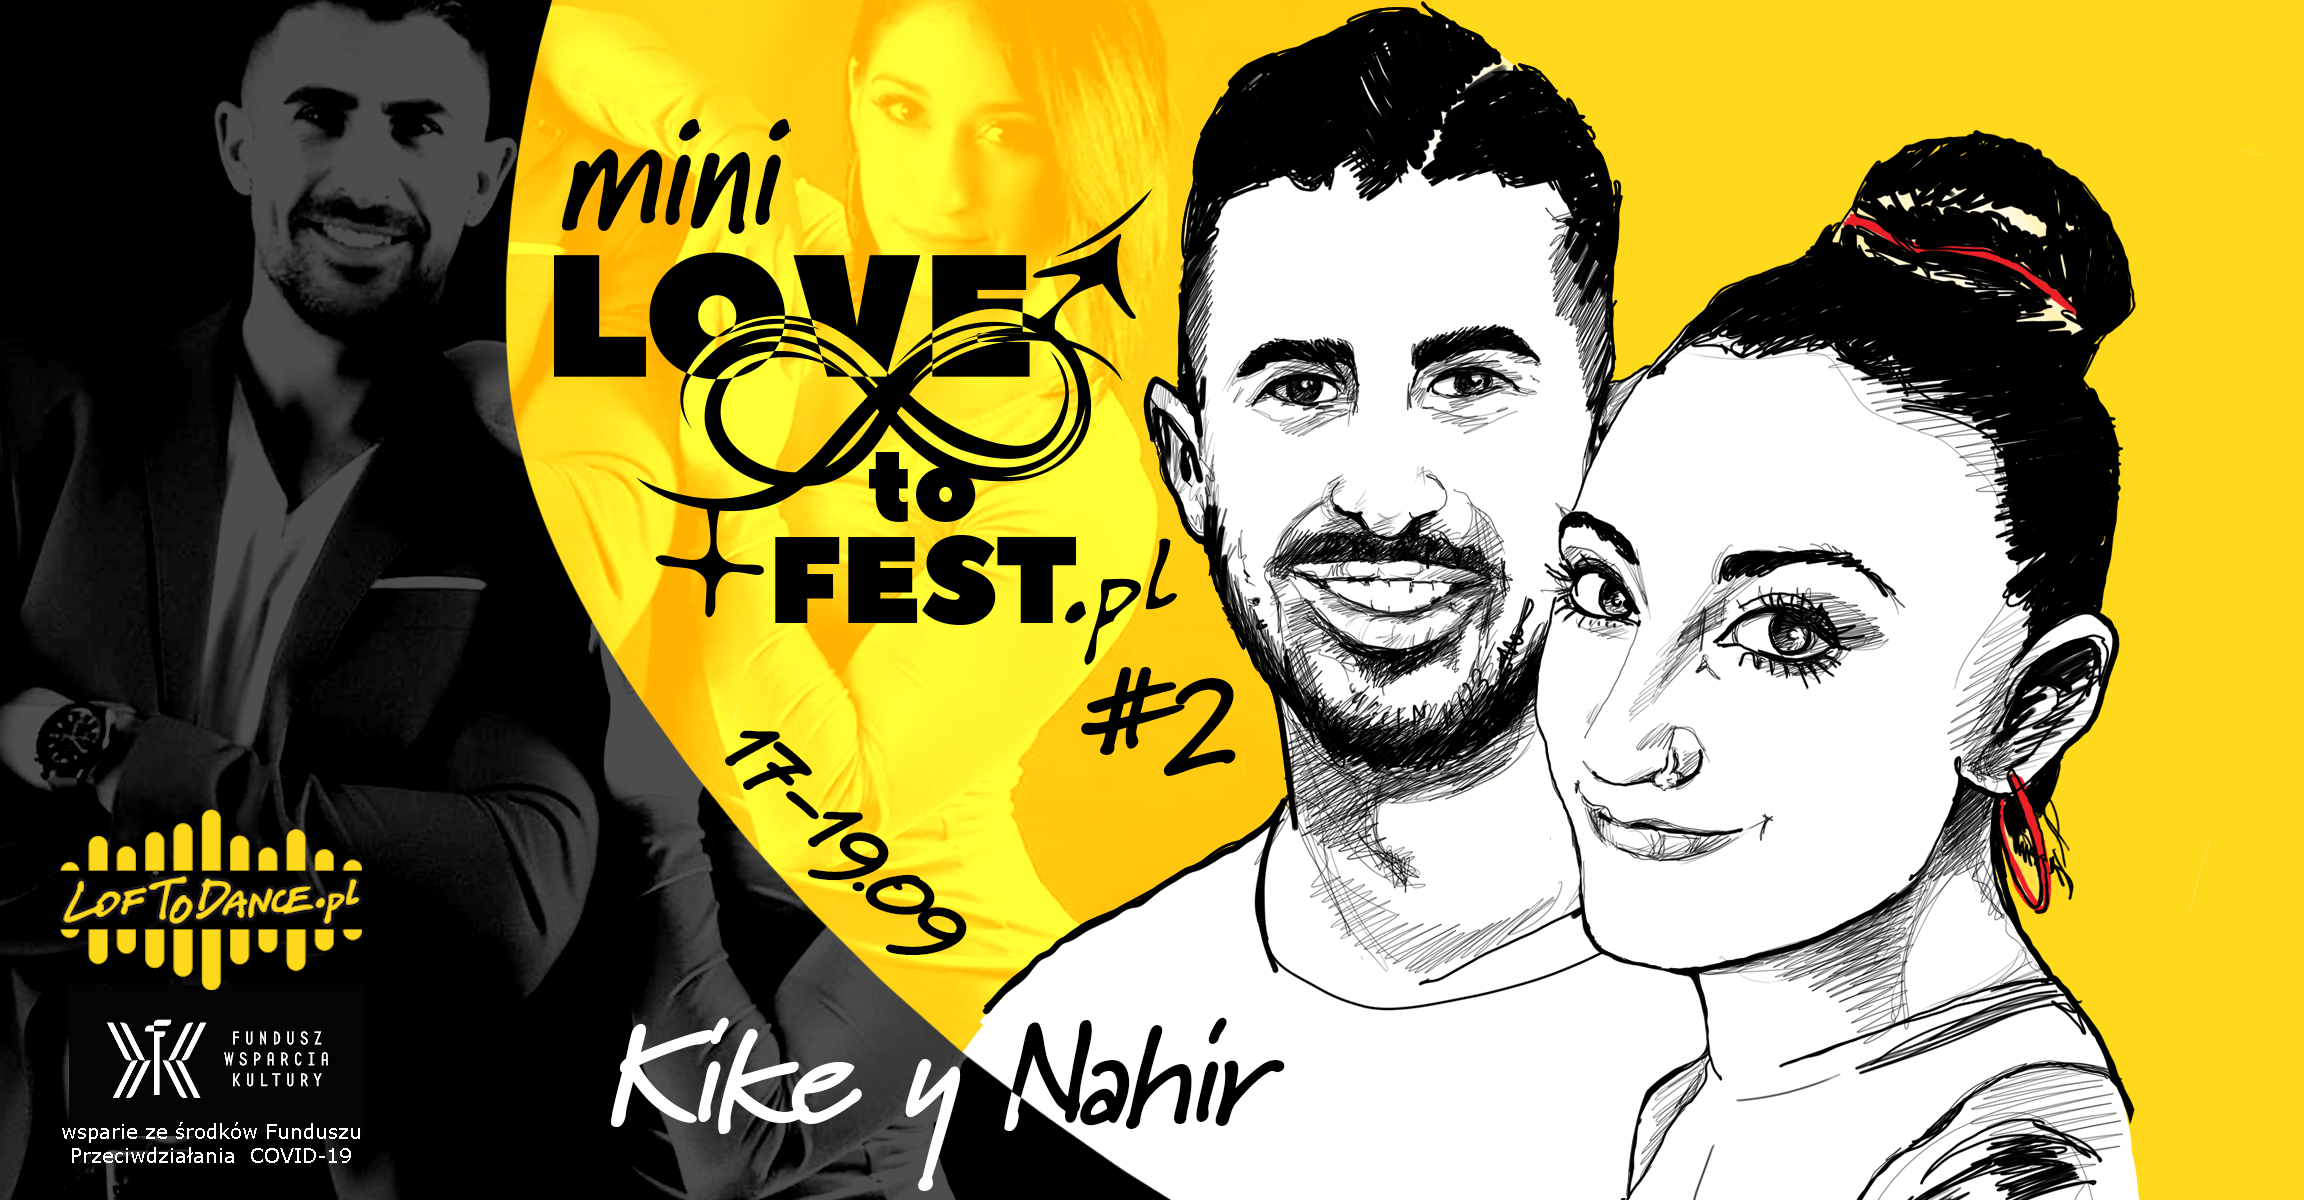 Mini LOVEtoFEST #2 with Kike y Nahir - sklep Loftodance